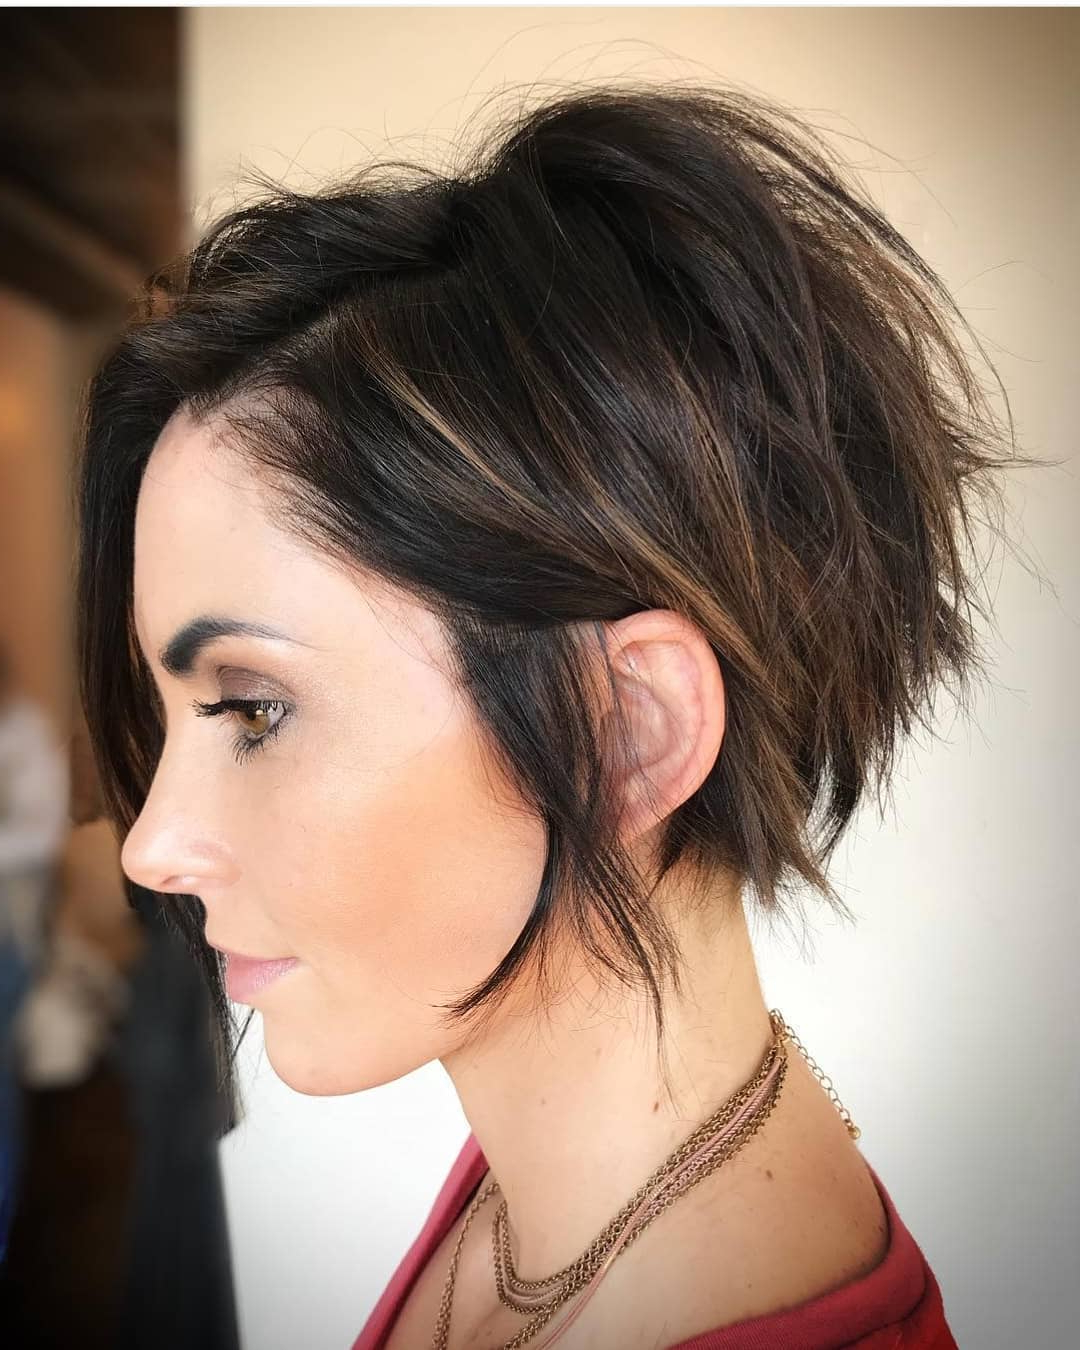 10 Pixie Haircut Inspiration, Latest Short Hair Styles For Pertaining To Highlighted Pixie Hairstyles (View 9 of 20)